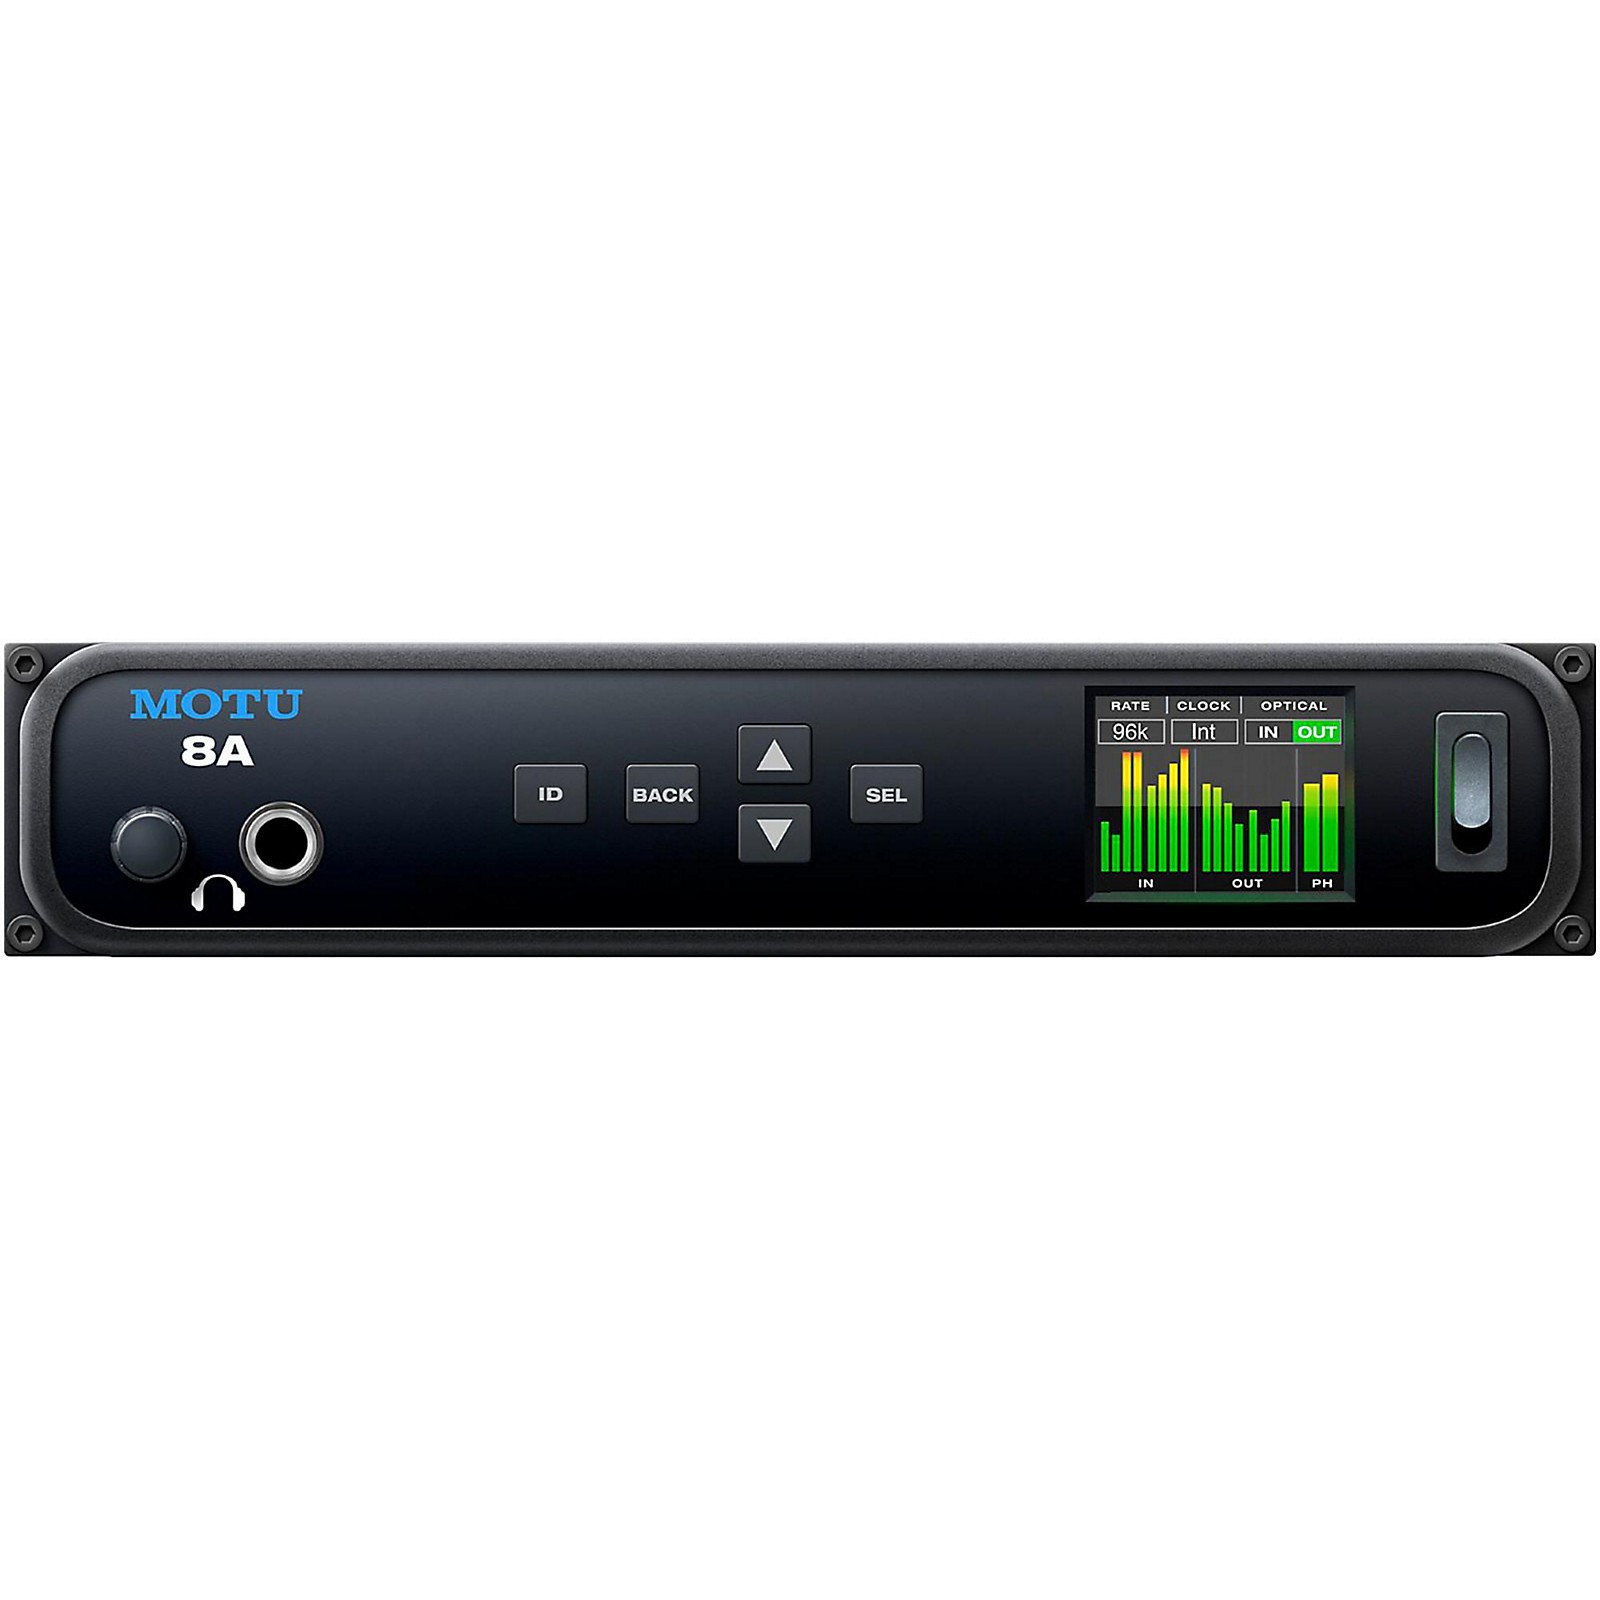 MOTU 8A Thunderbolt / USB3 / AVB Ethernet audio interface with DSP and mixing